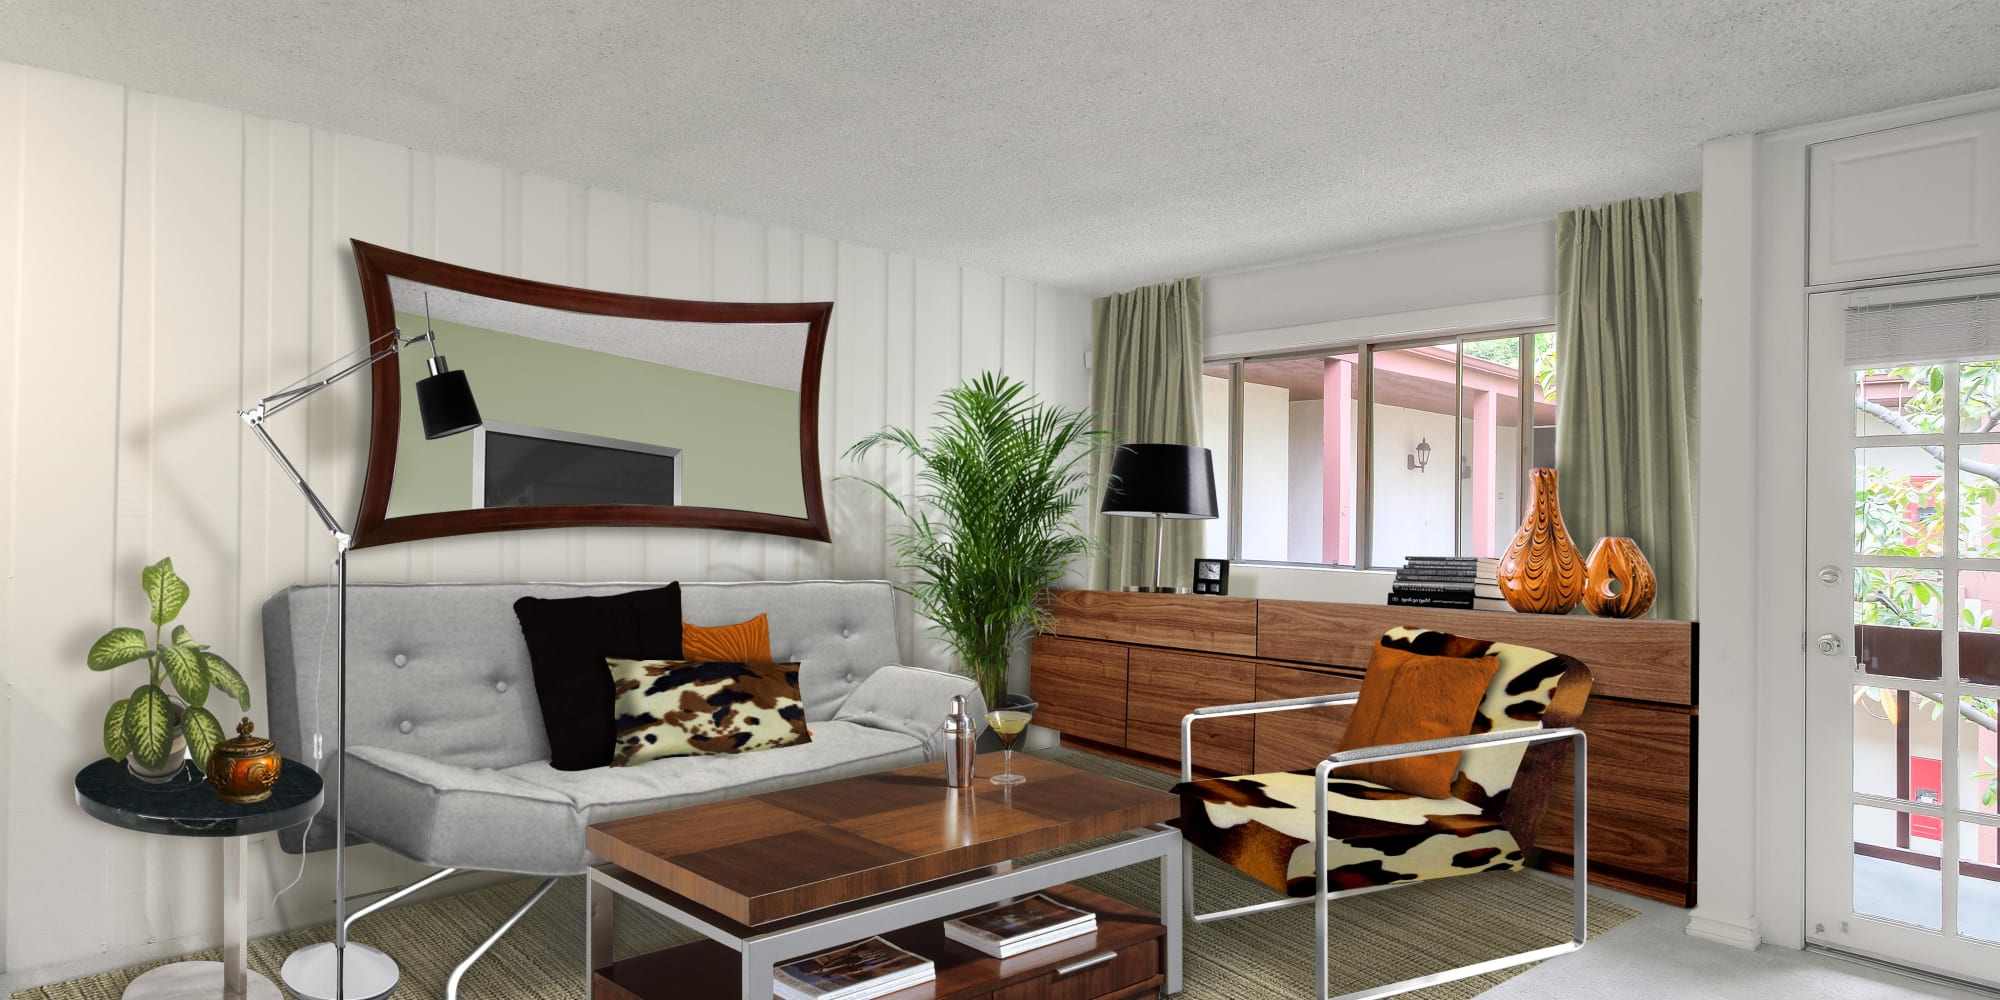 Retro furnishings and draped windows in a model home's living area at Rancho Los Feliz in Los Angeles, California